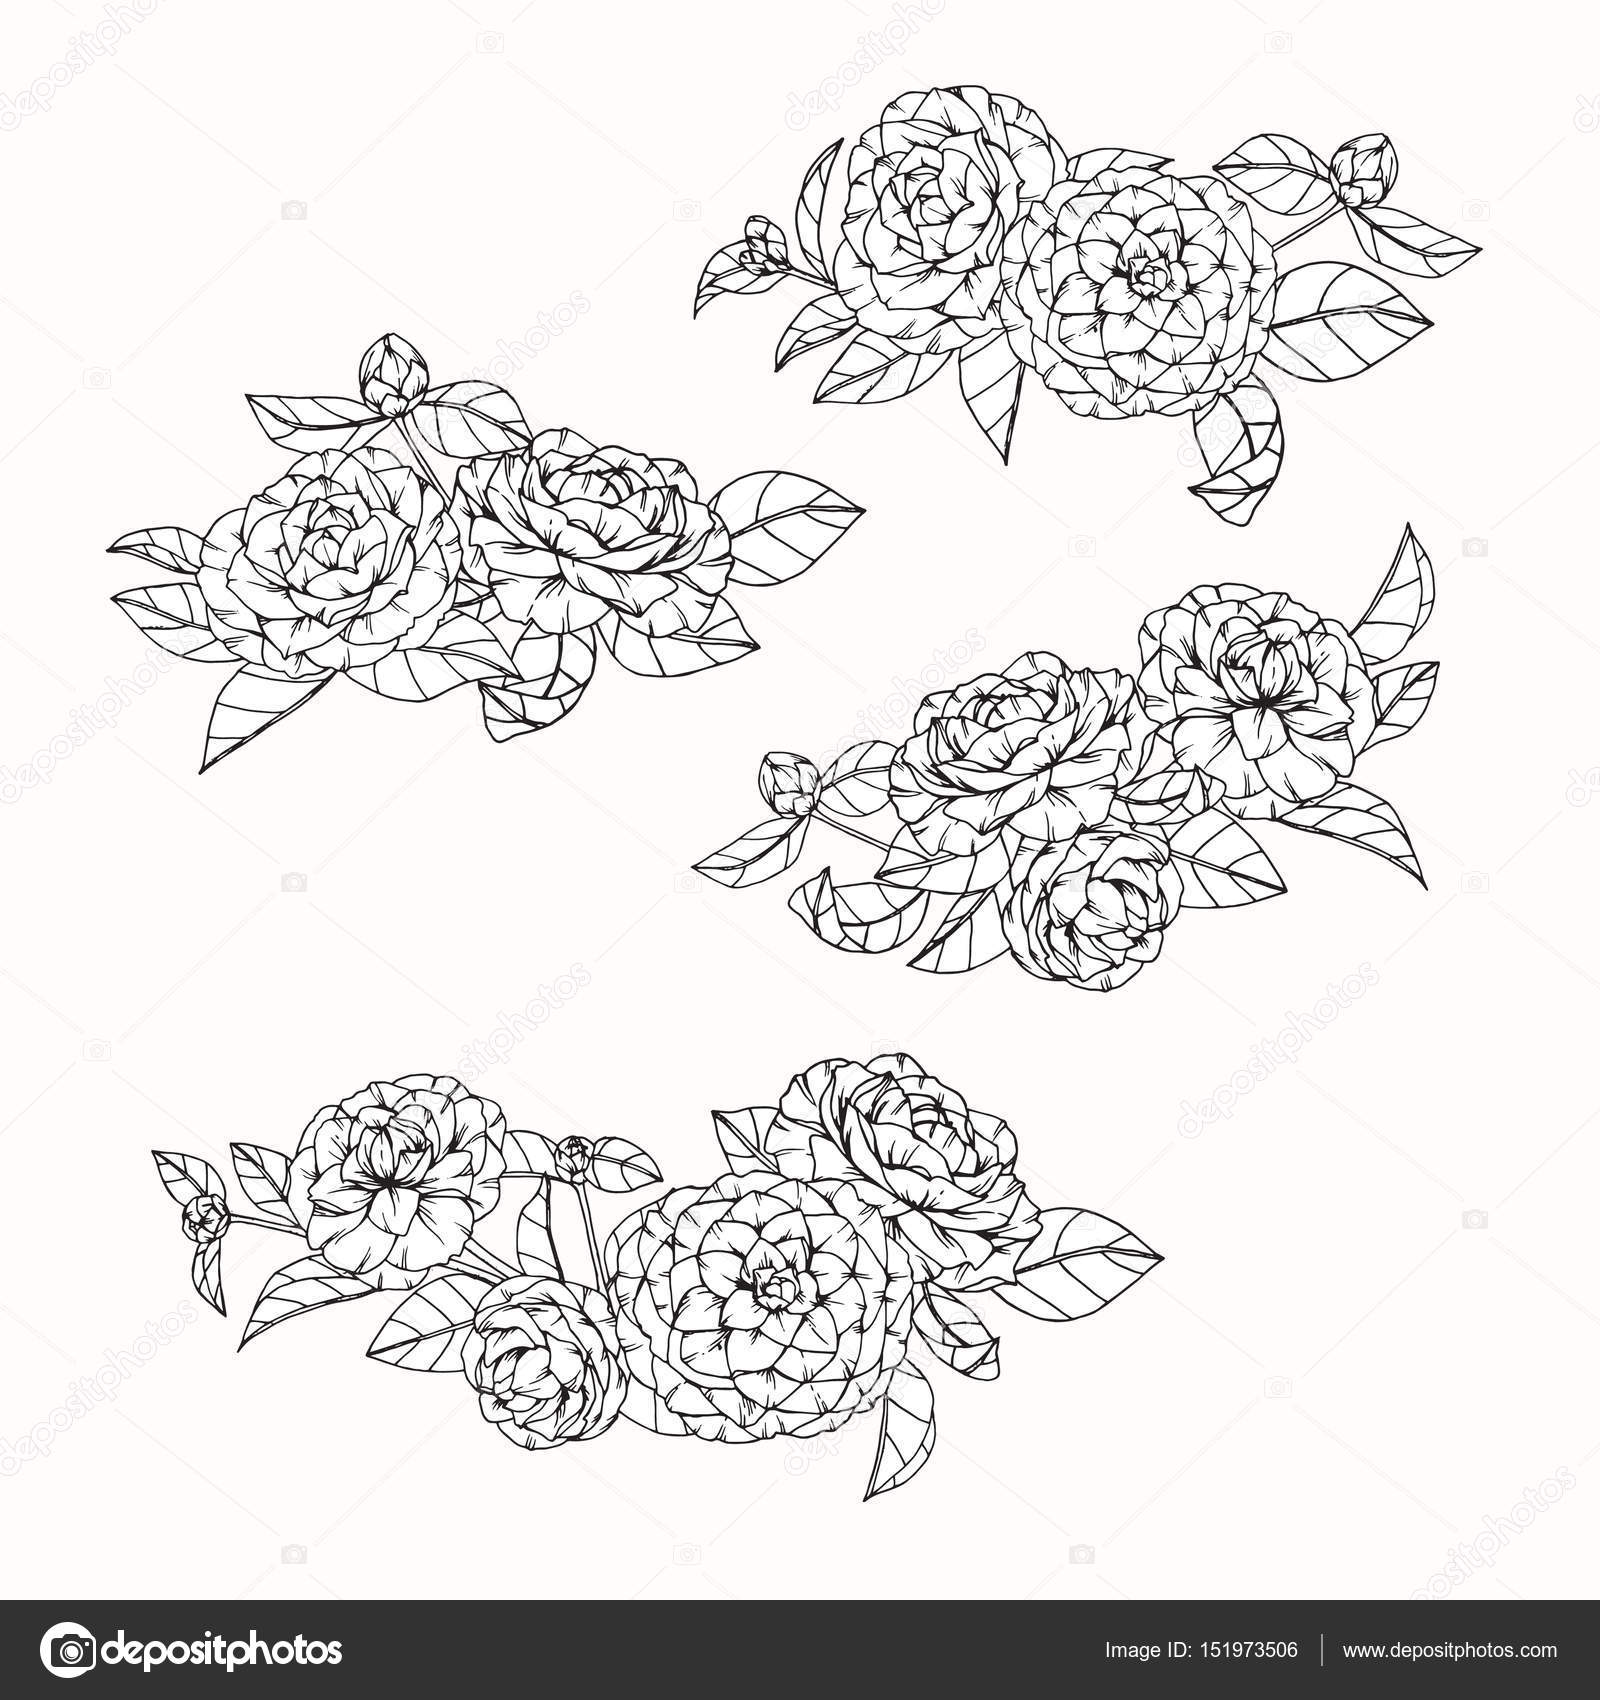 Camellia Flower Line Drawing : Camellia flowers drawing and sketch with line art — stock